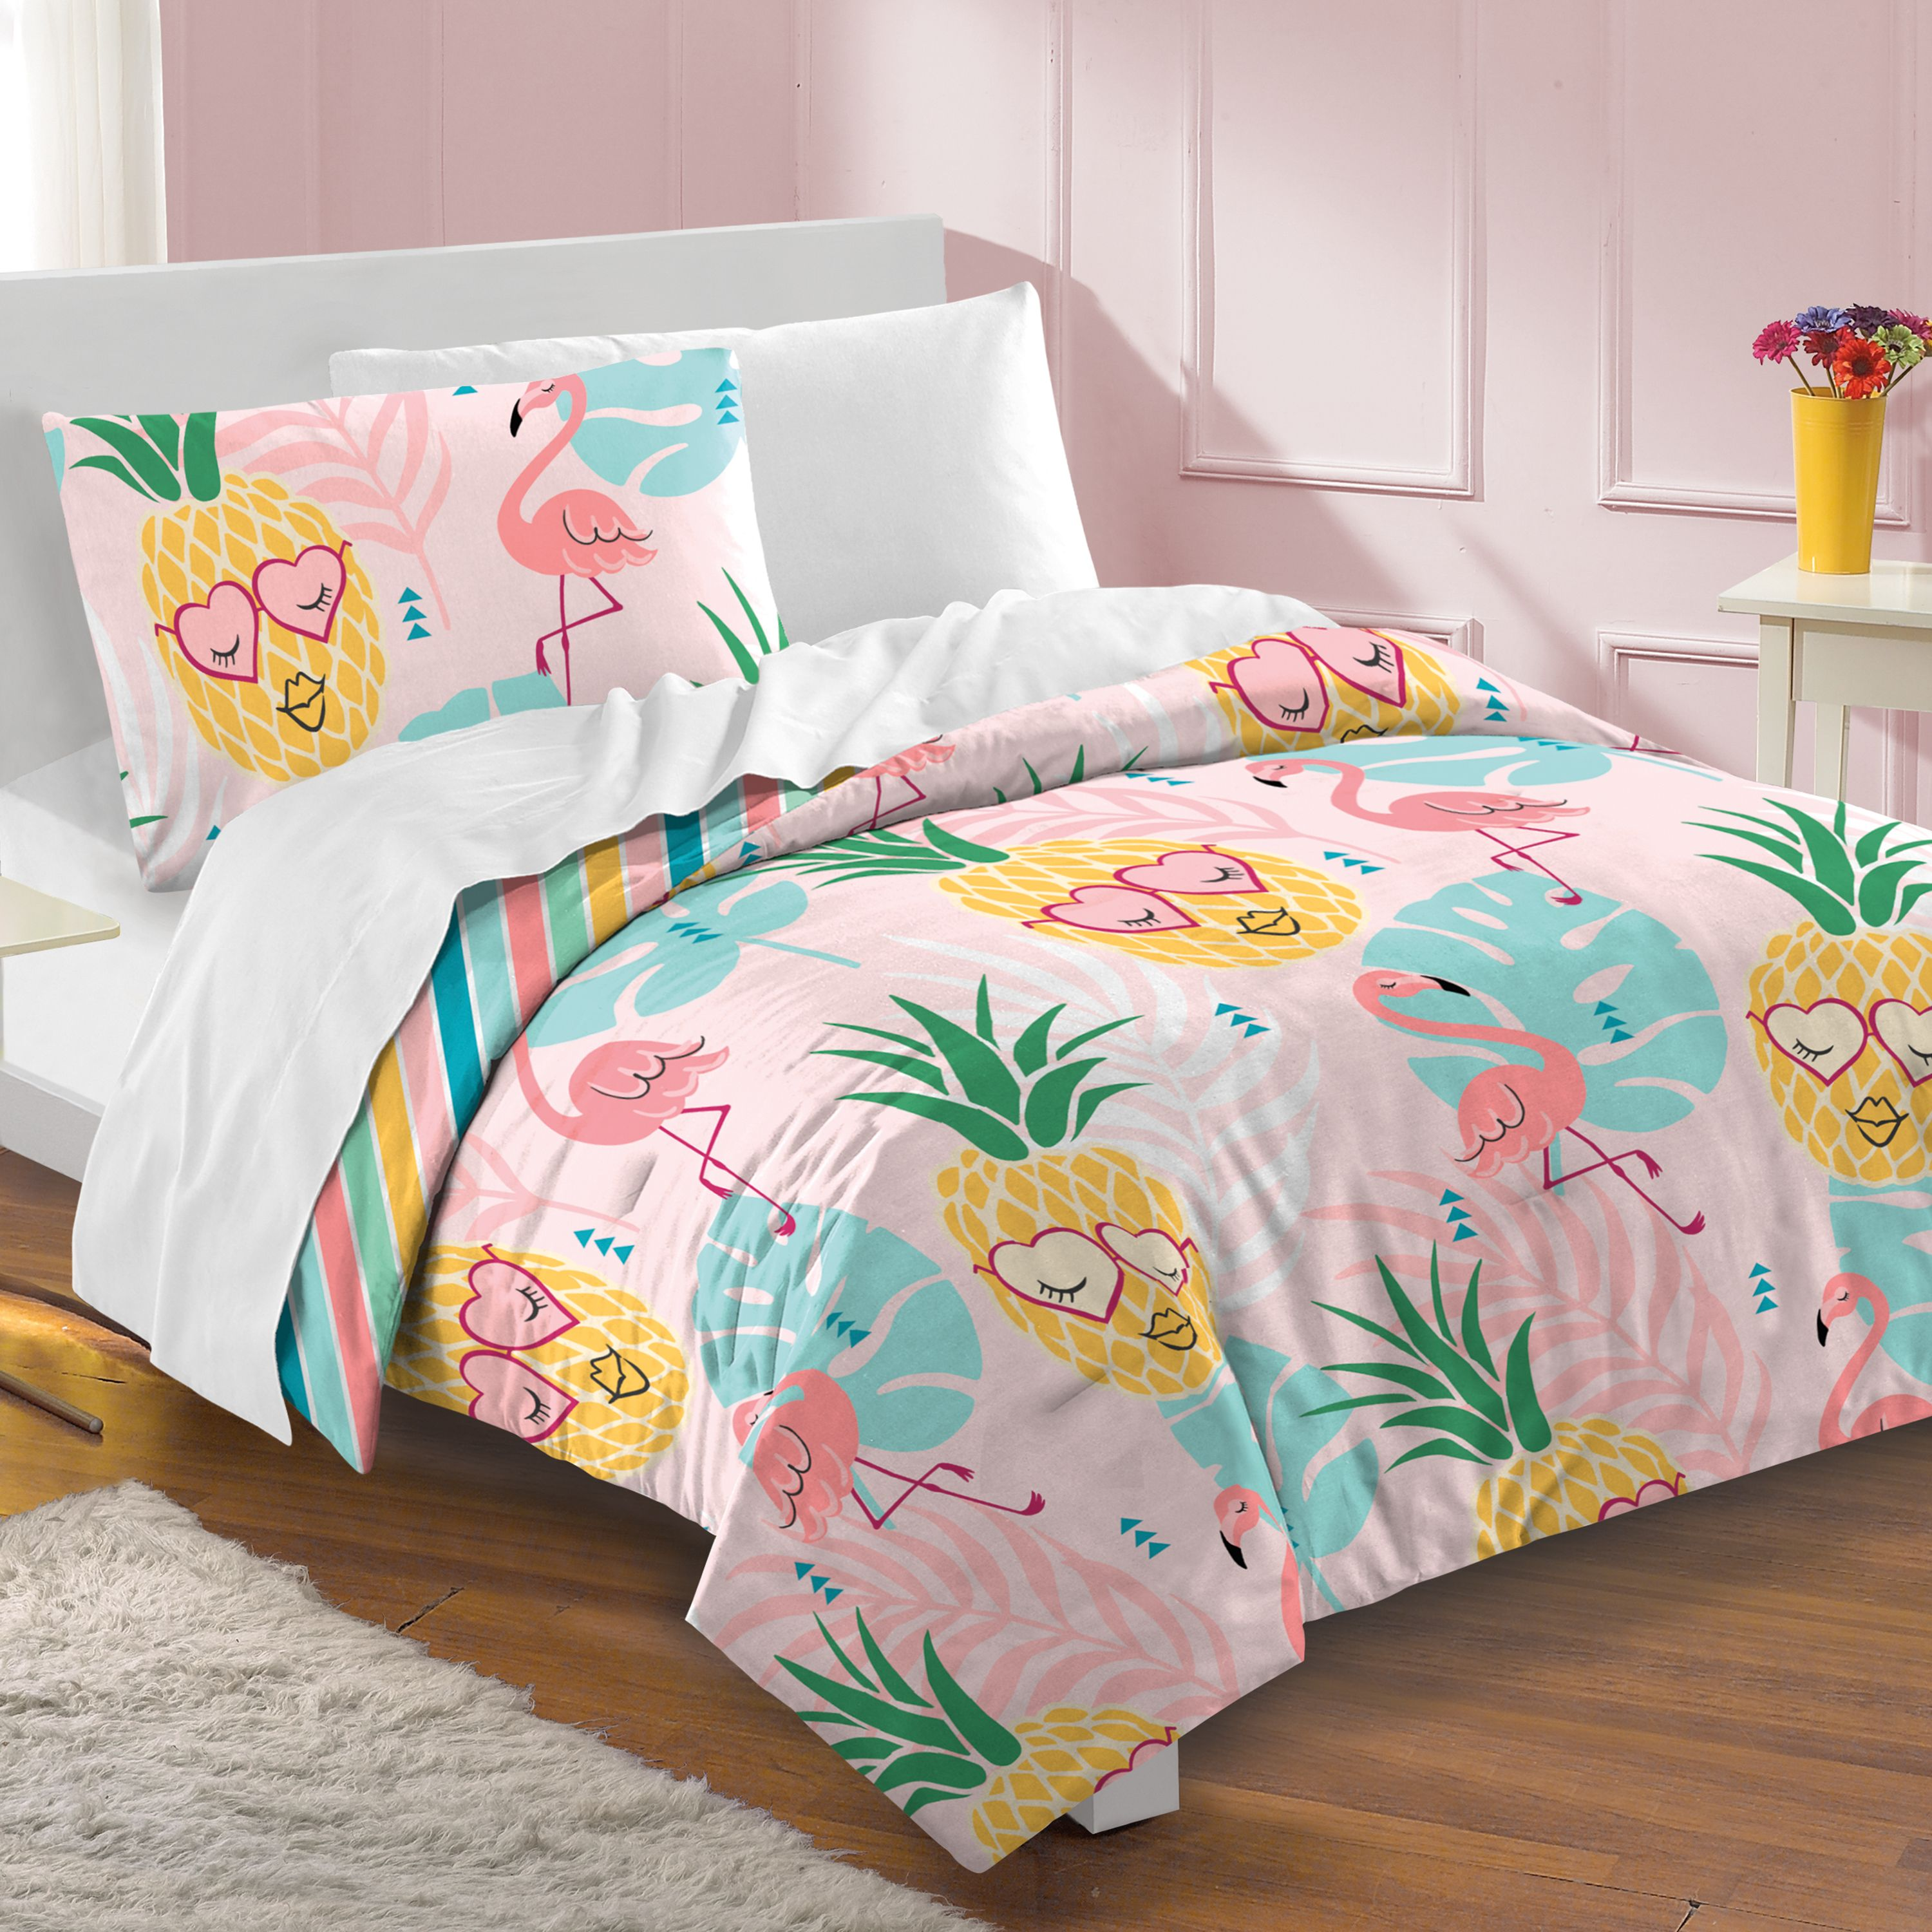 Girls Bedding Pineapple Flamingo Twin Comforter Set 3pc For Girls Pink